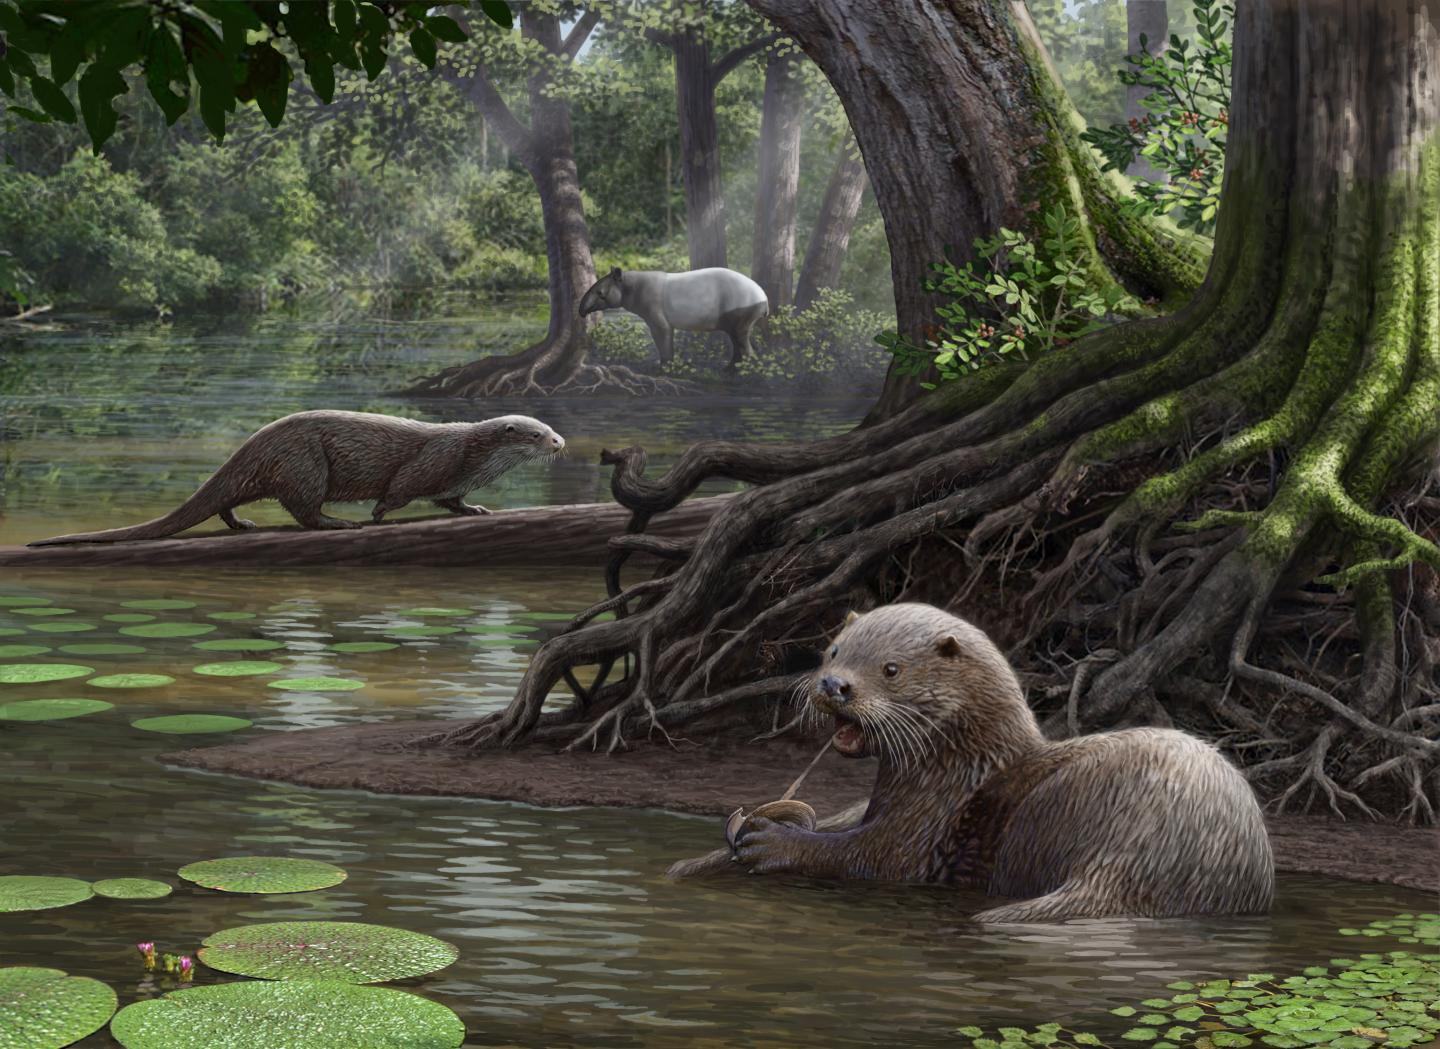 This Extinct Wolf-Sized Otter Demolished Prey With Its Forceful Bite